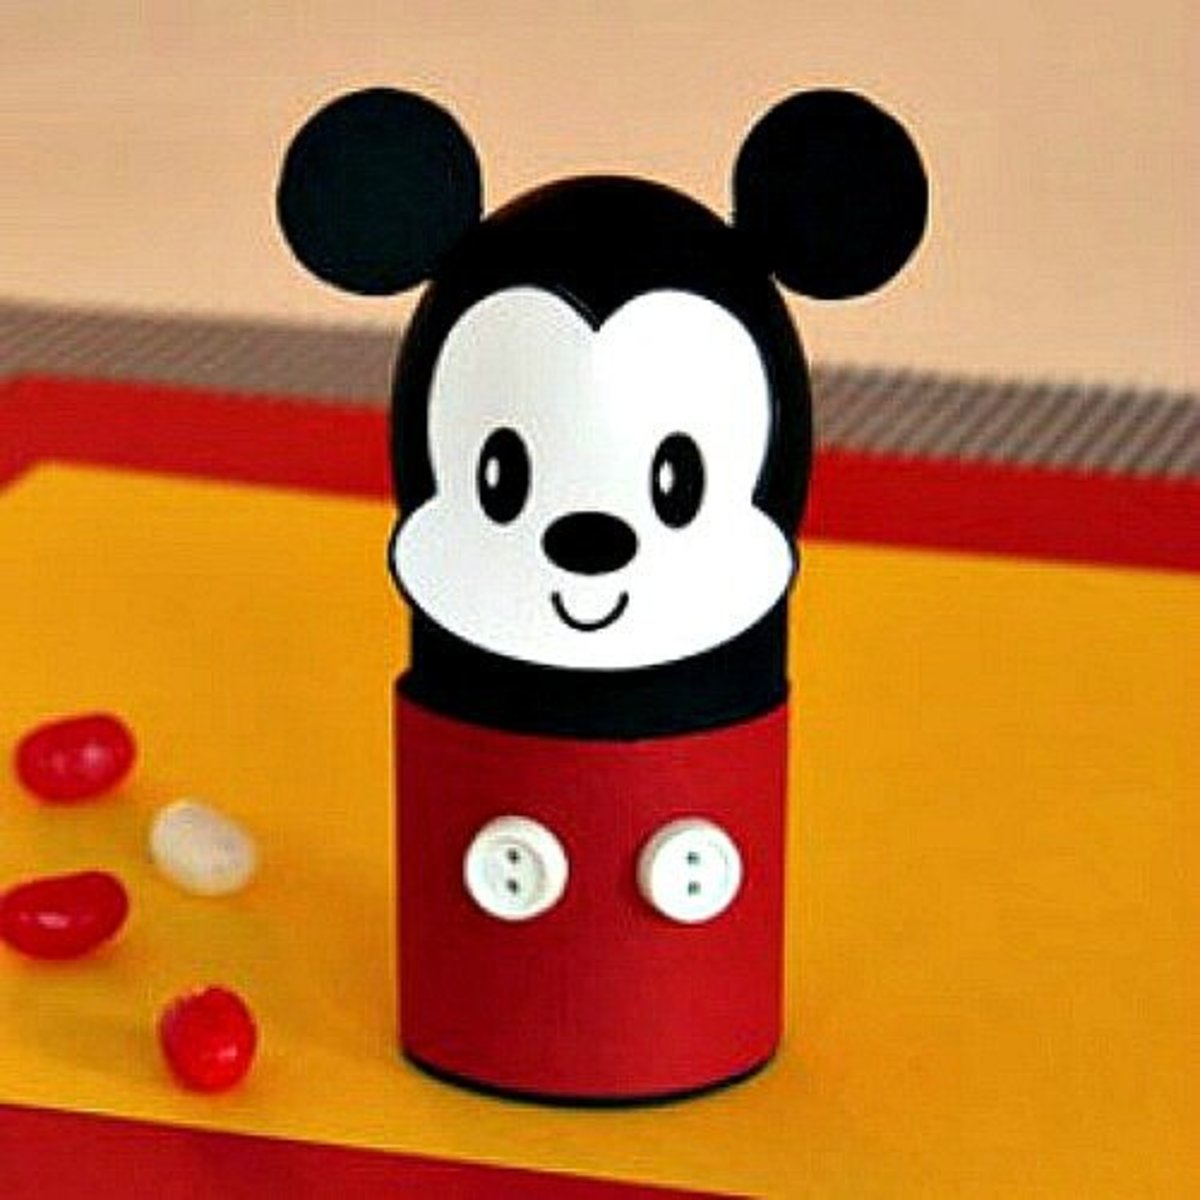 32 Fun and Creative Mouse Crafts